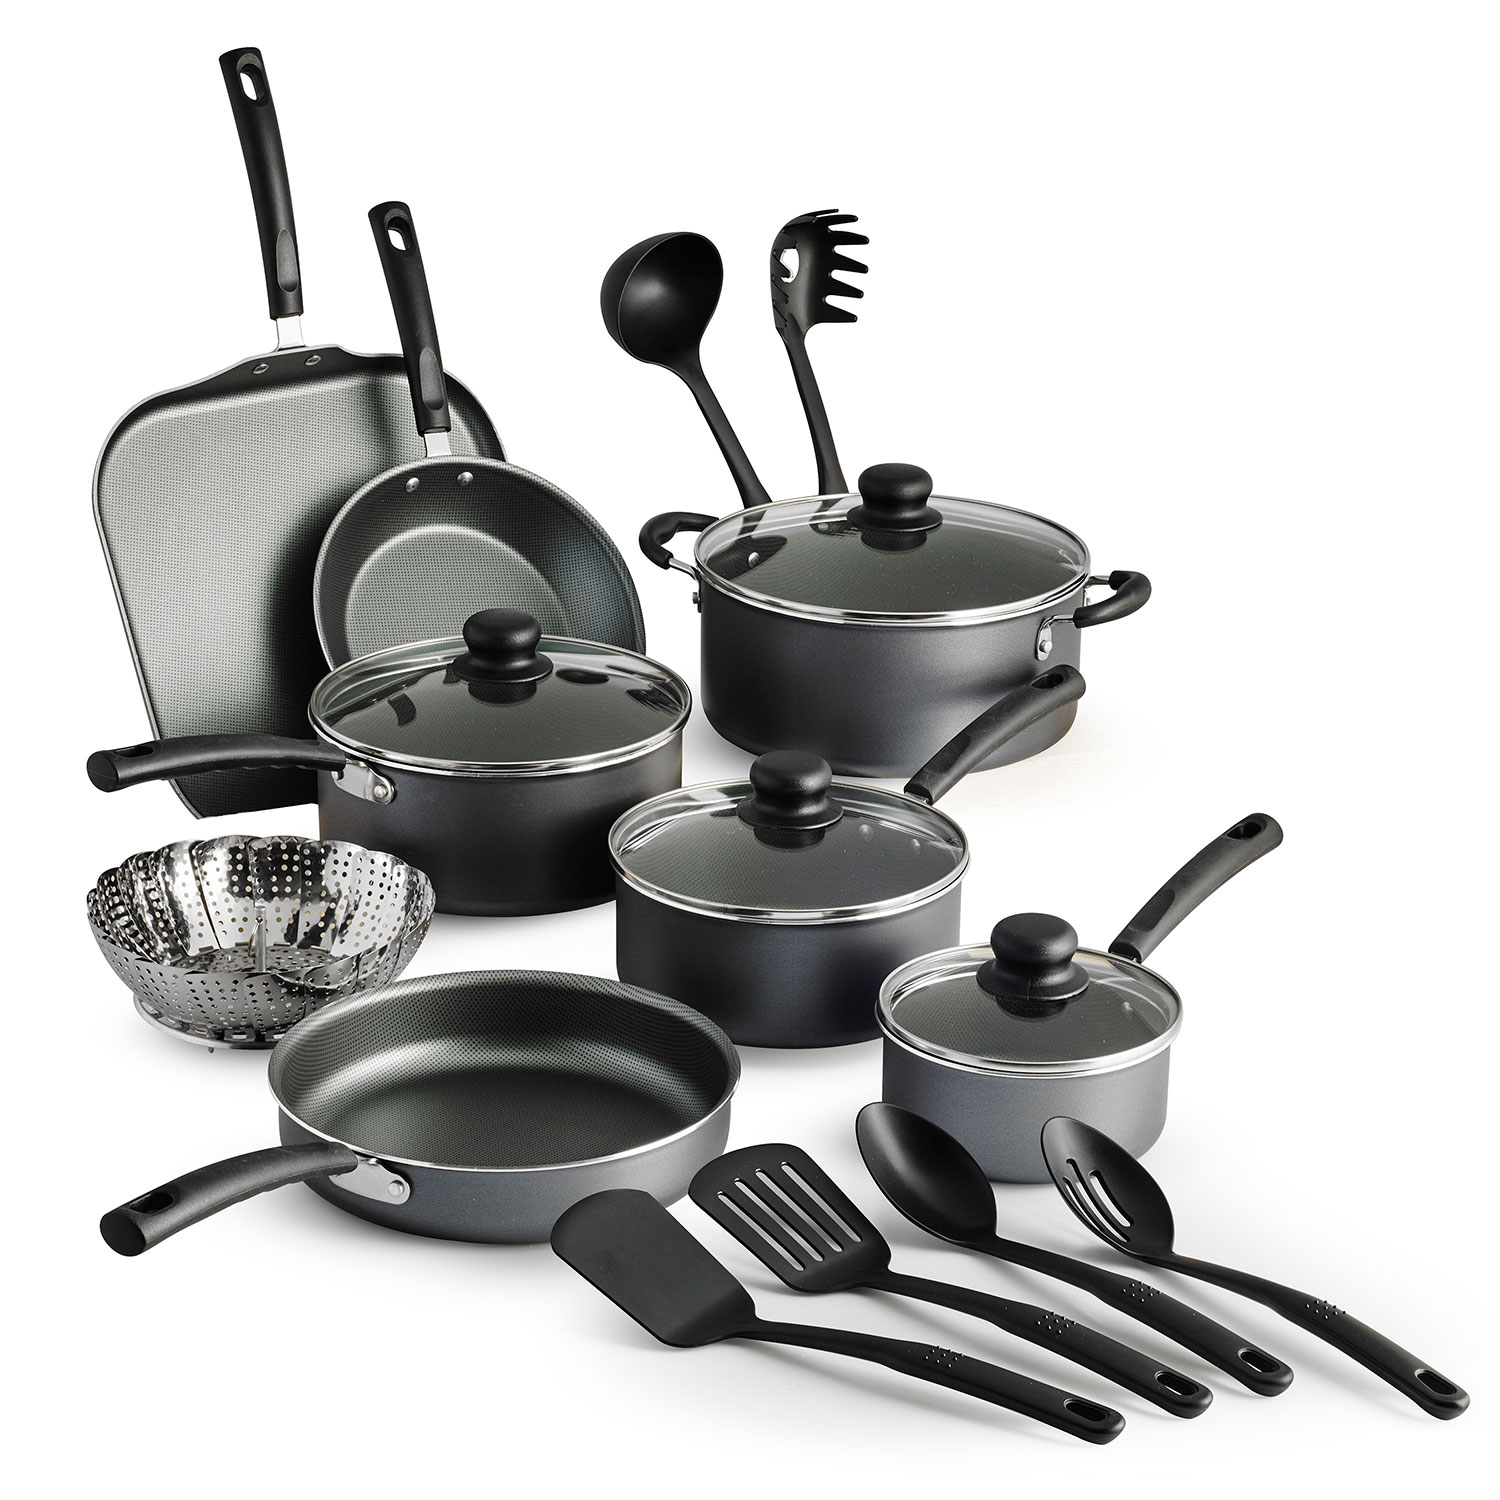 tramontina primaware 18 piece non-stick cookware set steel gray